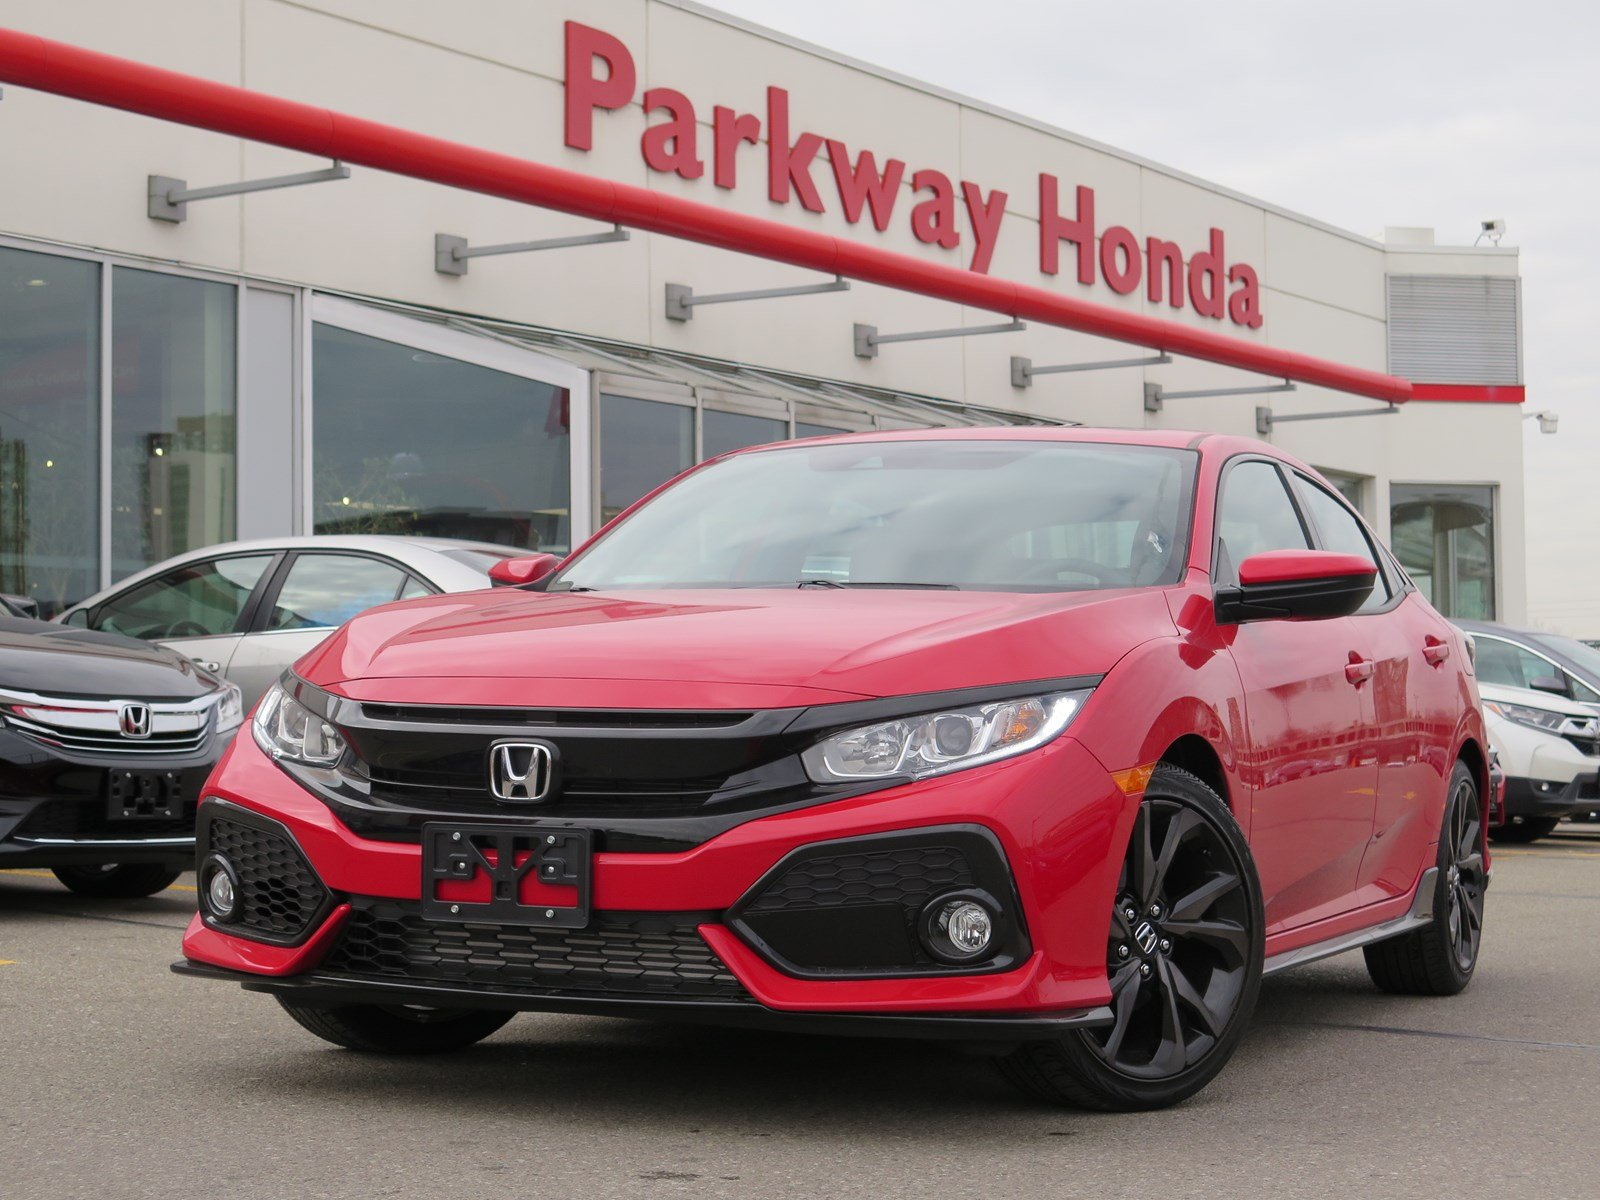 2018 civic hatchback manual transmission